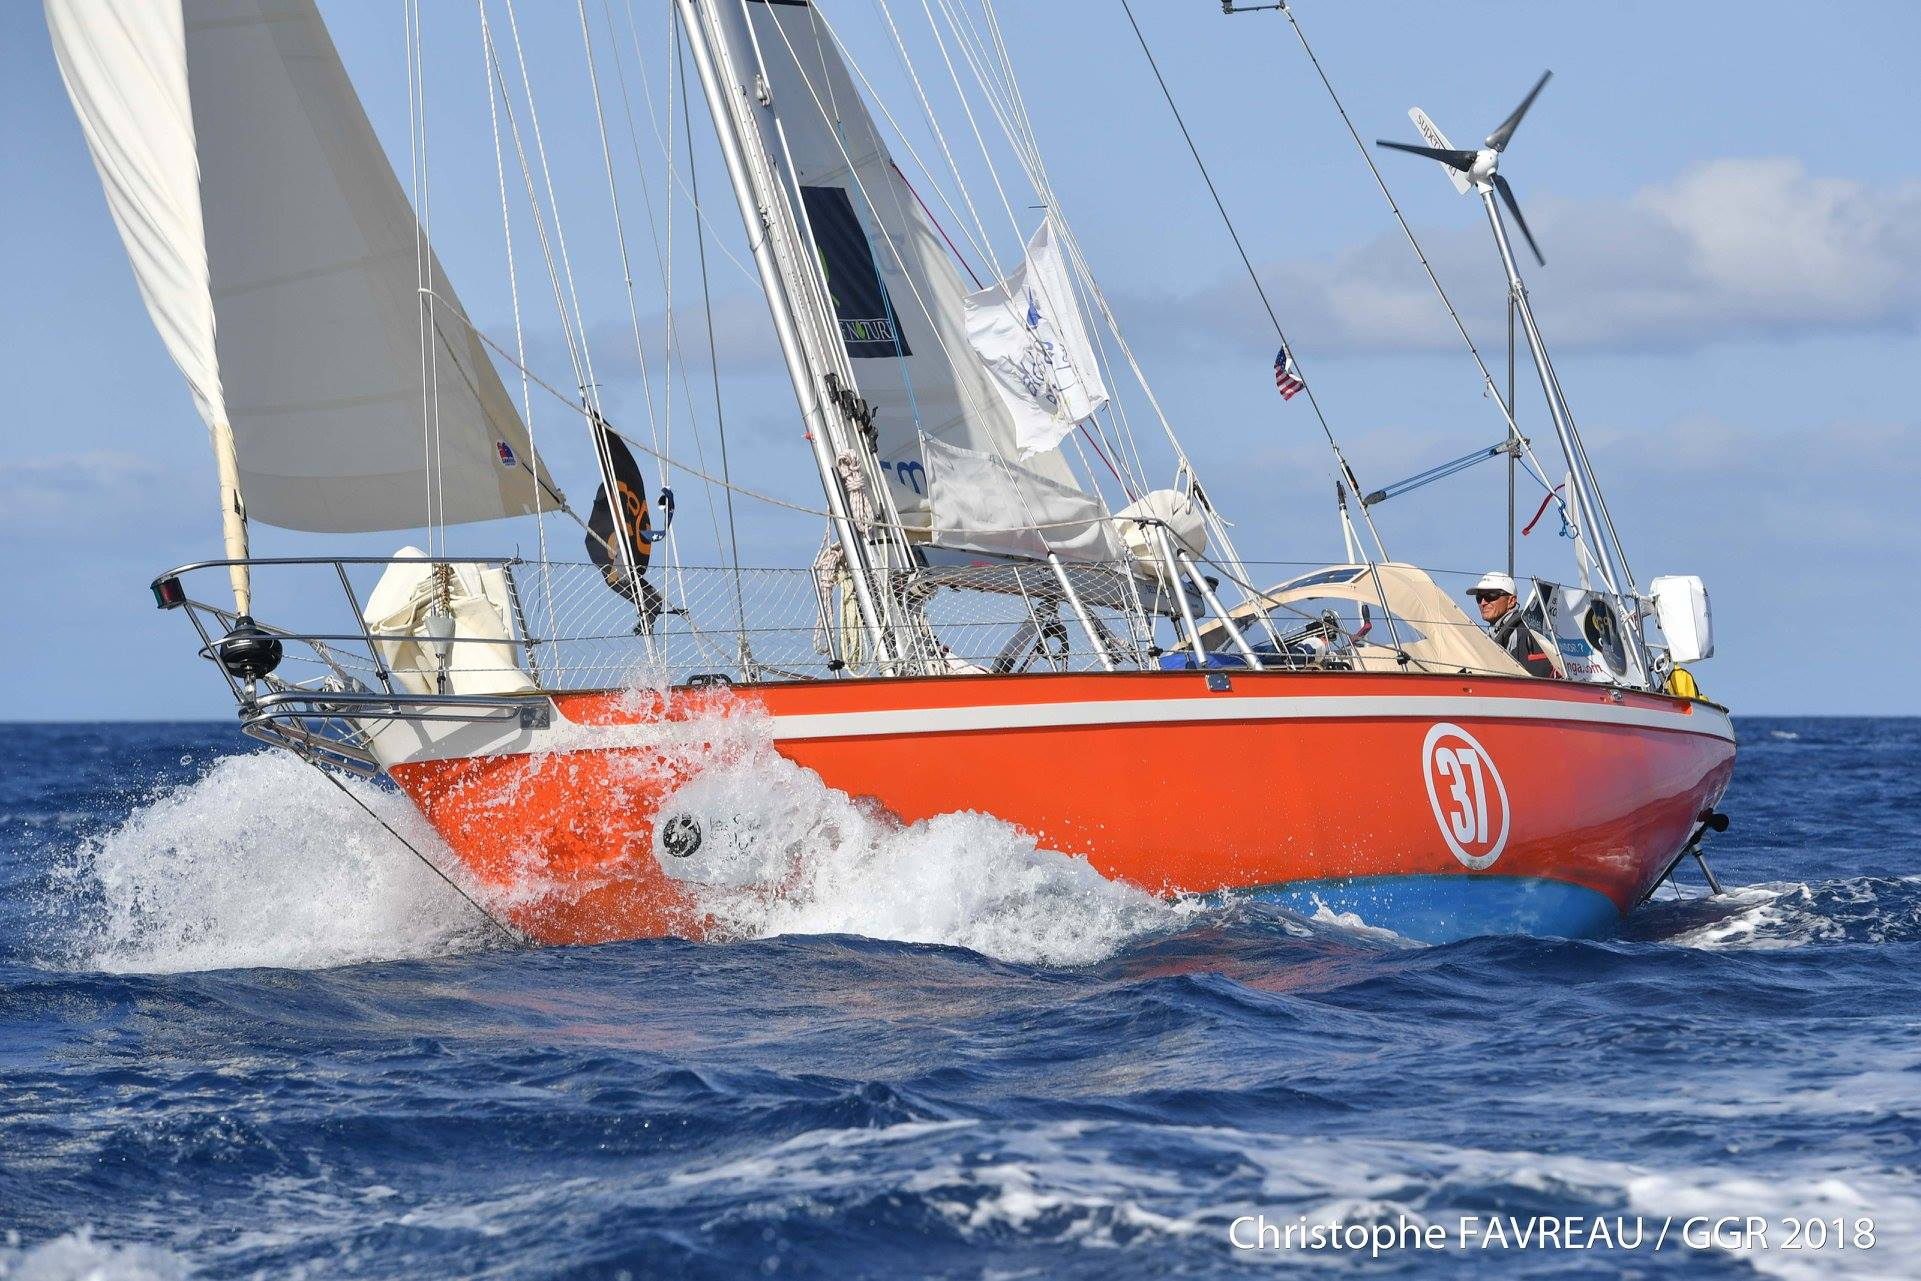 GGR 2018-19, Part 4: The First Leg of the Race—France to Cape Verde